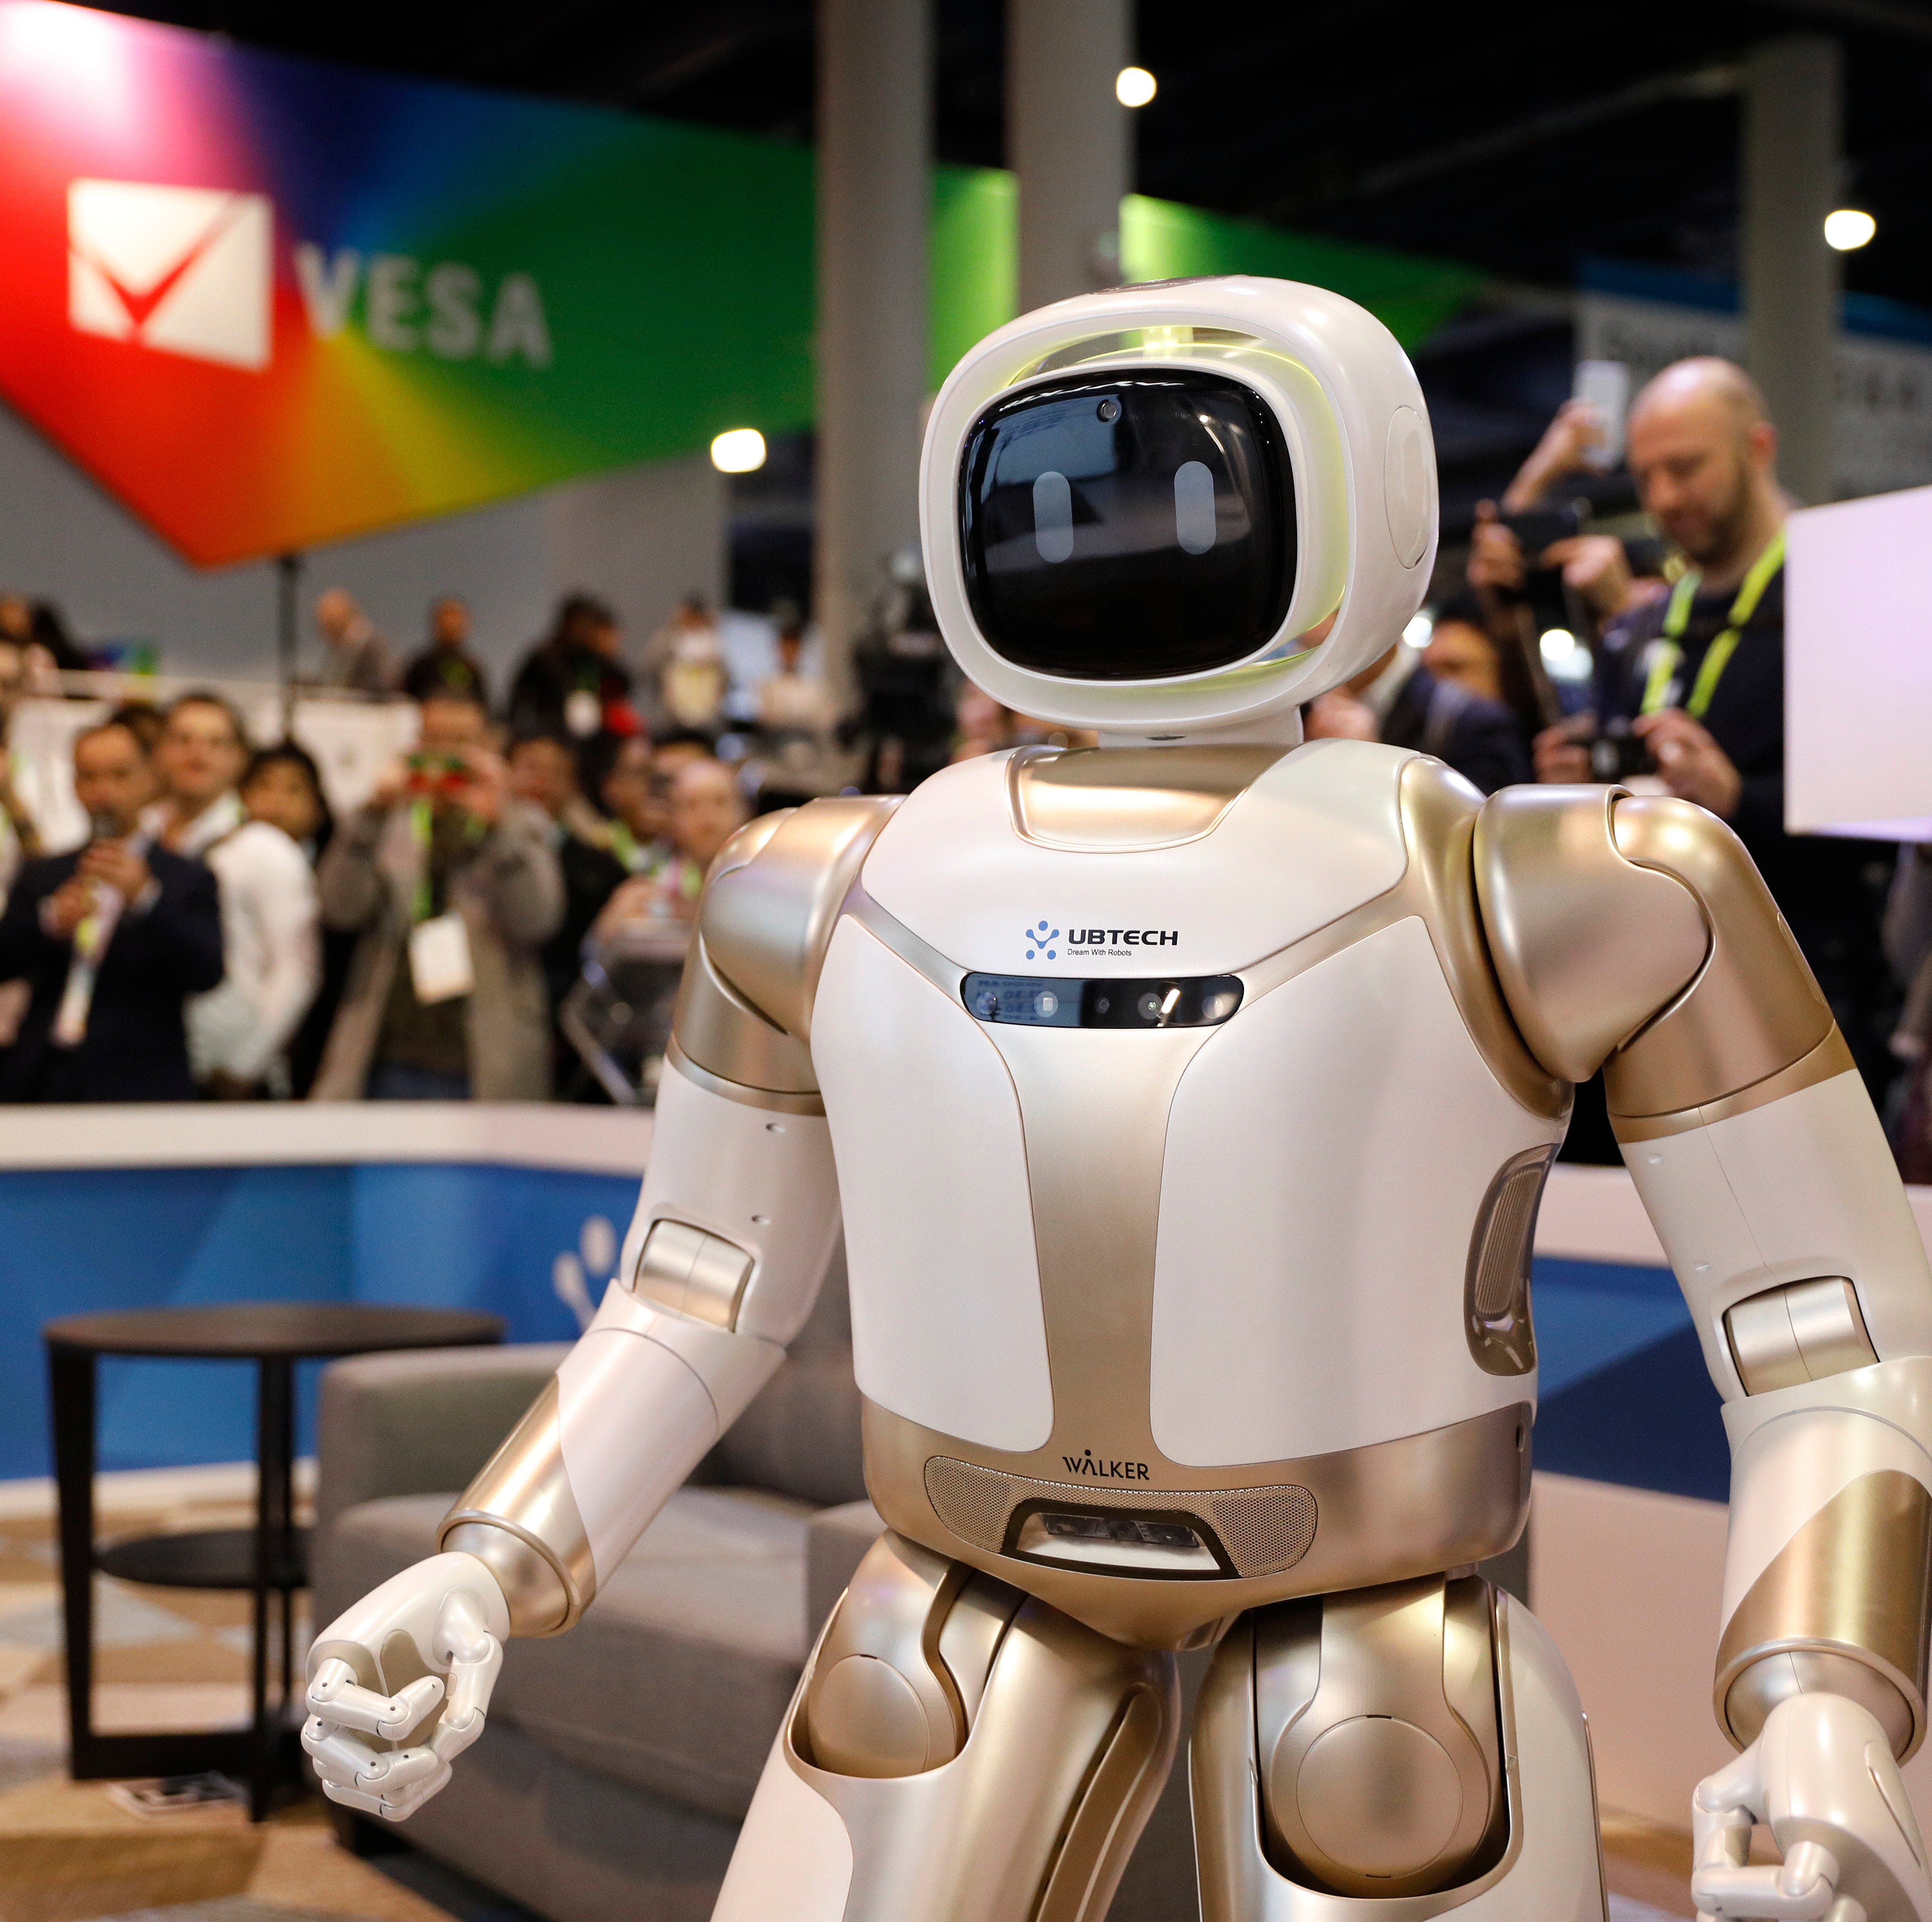 Robots walk, talk, pour beer and take over CES tech show in Las Vegas